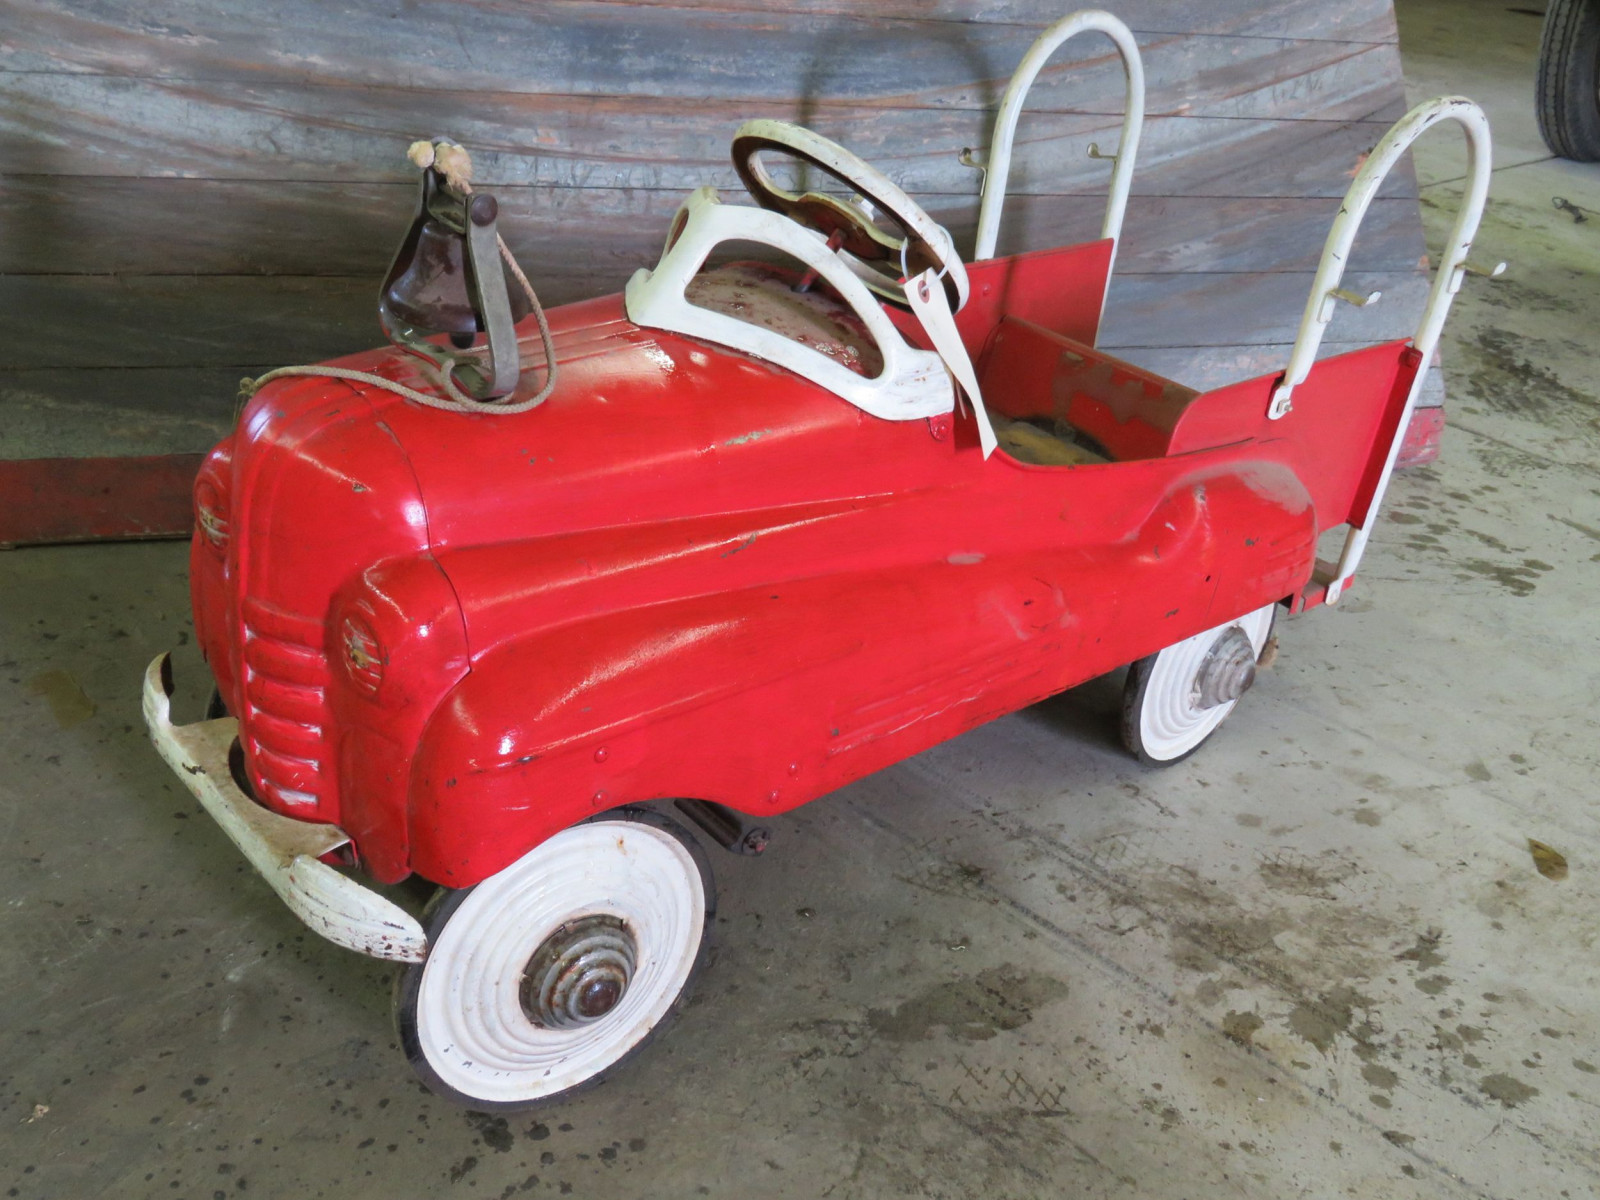 Vintage Murray Fire Chief pedal Car for Restore - Image 1